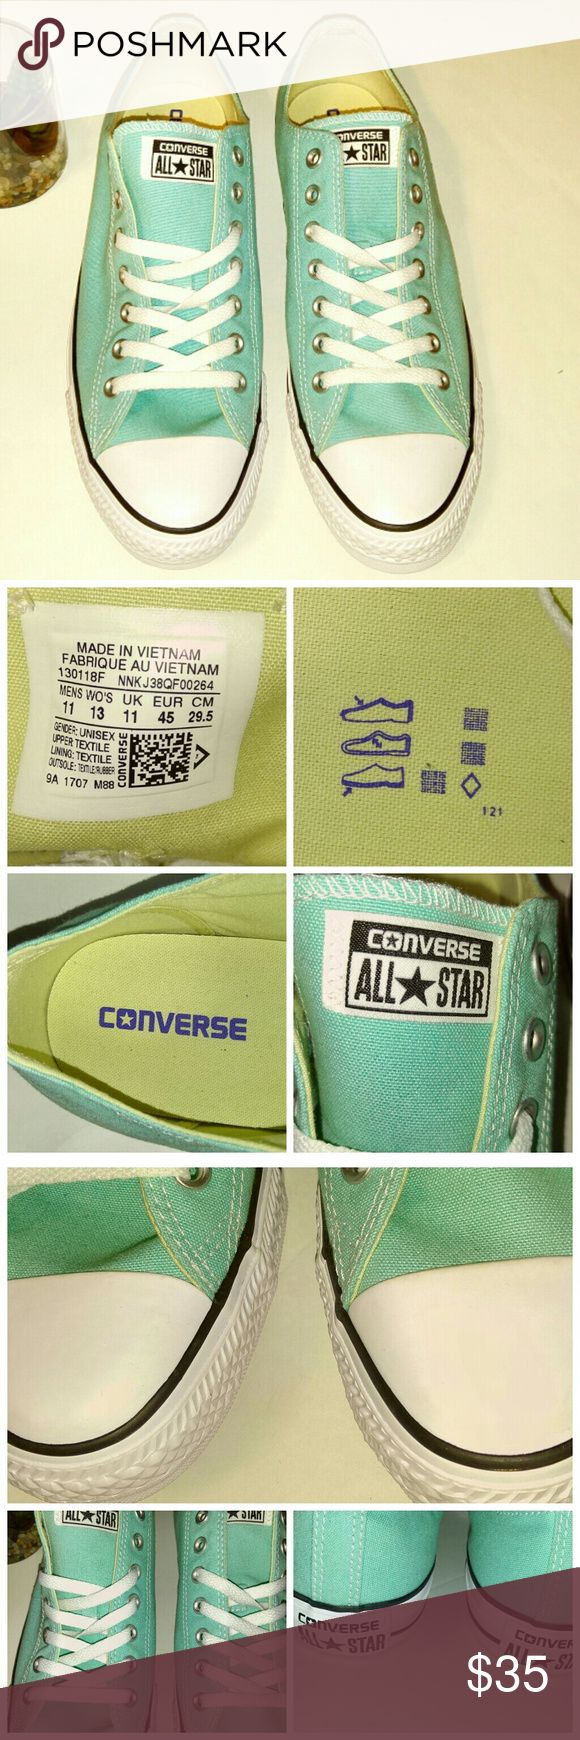 NWOB Unisex Converse Light Teal Sneakers *These brand new Converse are nice, and comfy!  They are a light teal color, with white laces, and silver hardware.  They are unisex, and so versatile.  They are a Women's size 13, and a Men's size 11.  On the white rubber part you can see minor faint marks.  Nothing major.  You cannot see when the are on.  These sneakers are made for comfort, and all day wear.  They are super functional!* Converse Shoes Sneakers